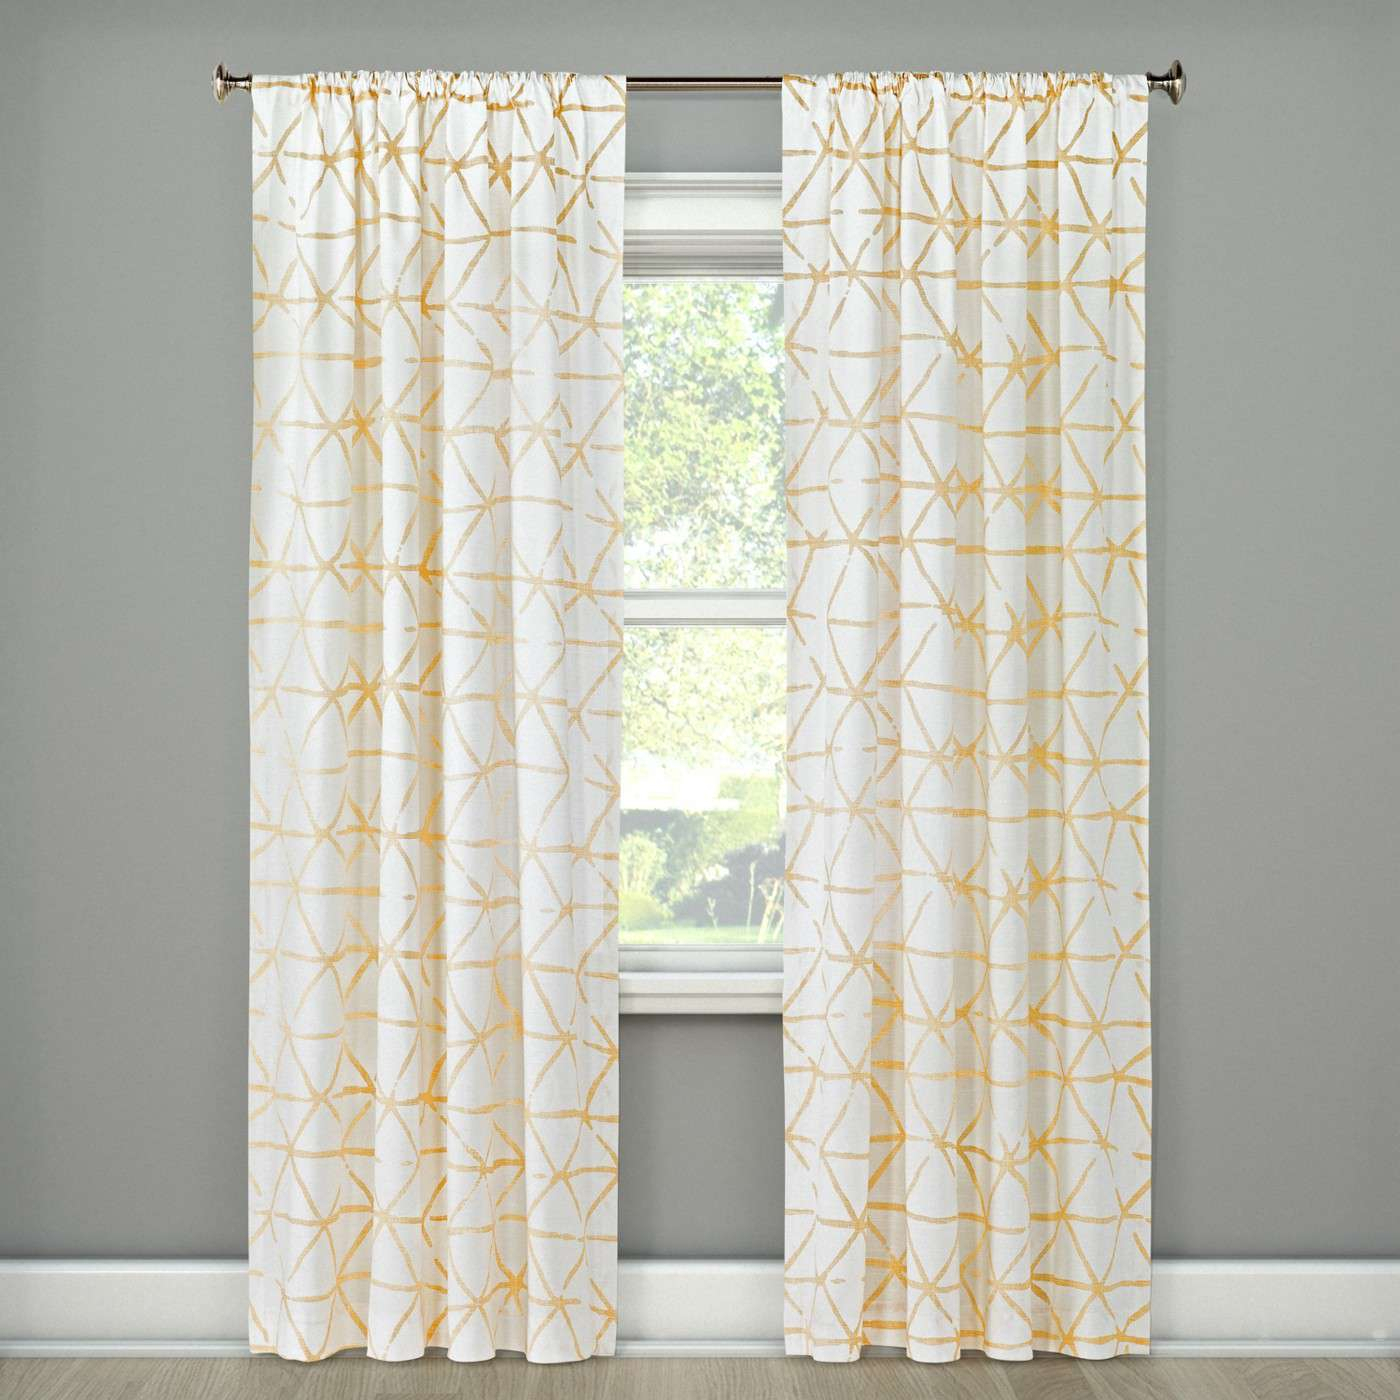 The Best Places To Buy Curtains In 2019 In All Seasons Blackout Window Curtains (Image 19 of 20)